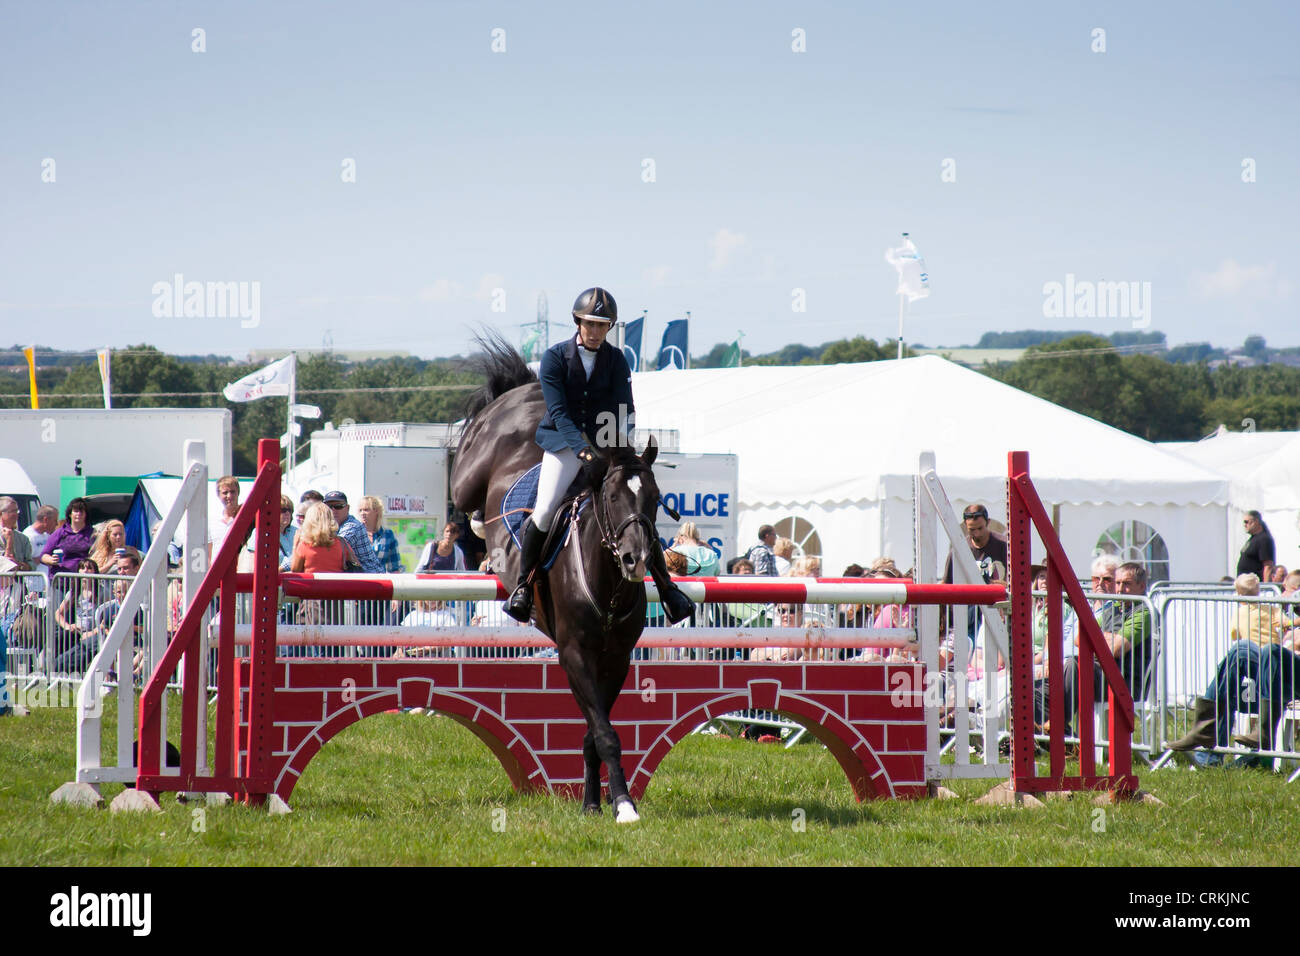 Show jumping at Showground - Stock Image